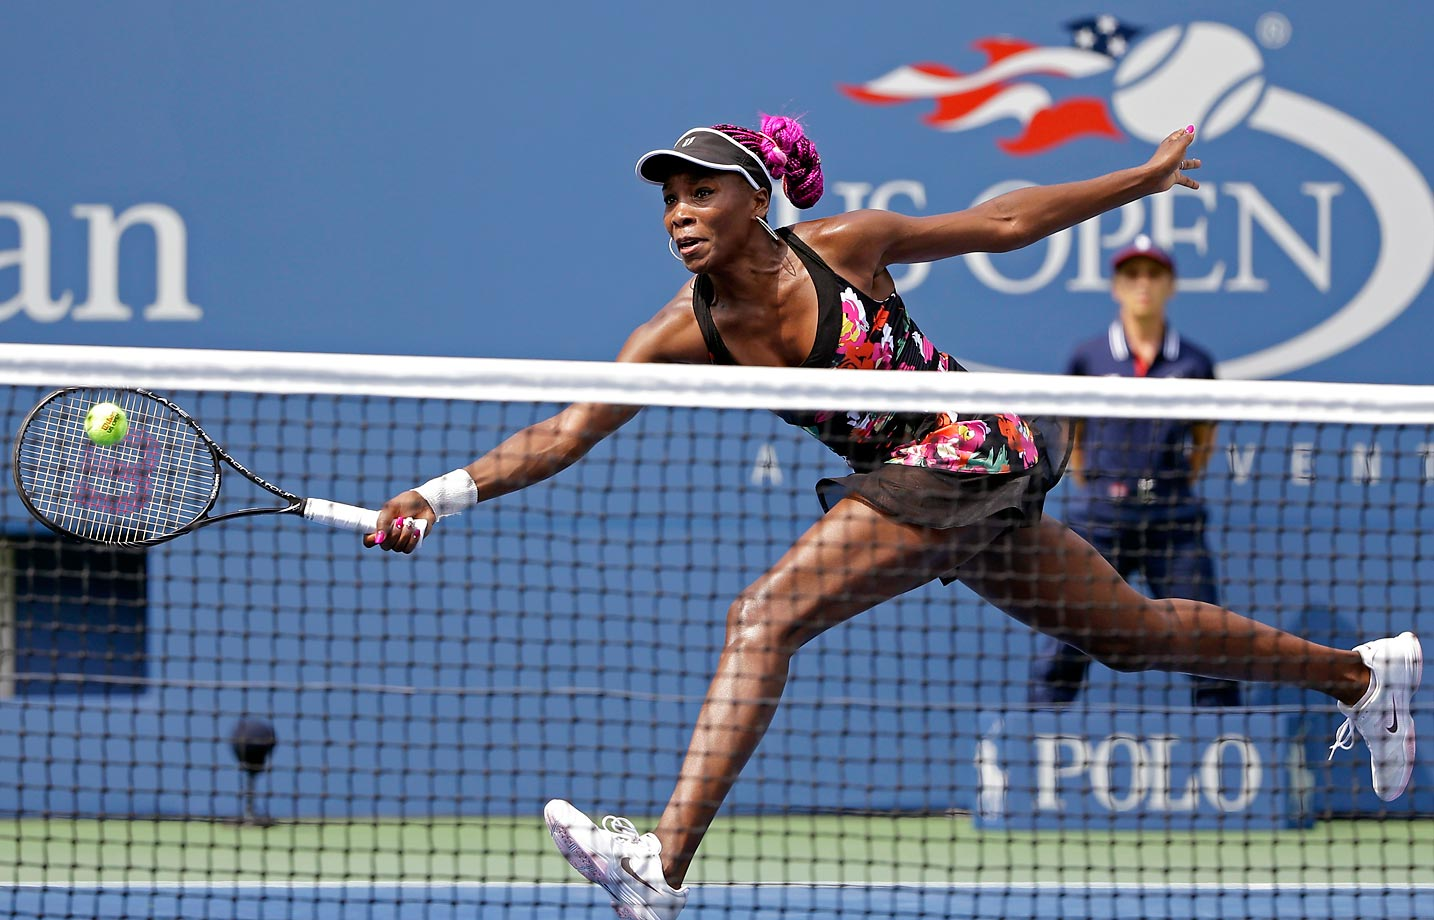 Williams returns a shot to 12th seed Kirsten Flipkens at the U.S. Open. Williams, who was still suffering from different injuries, pulled out the huge upset over Flipkens.